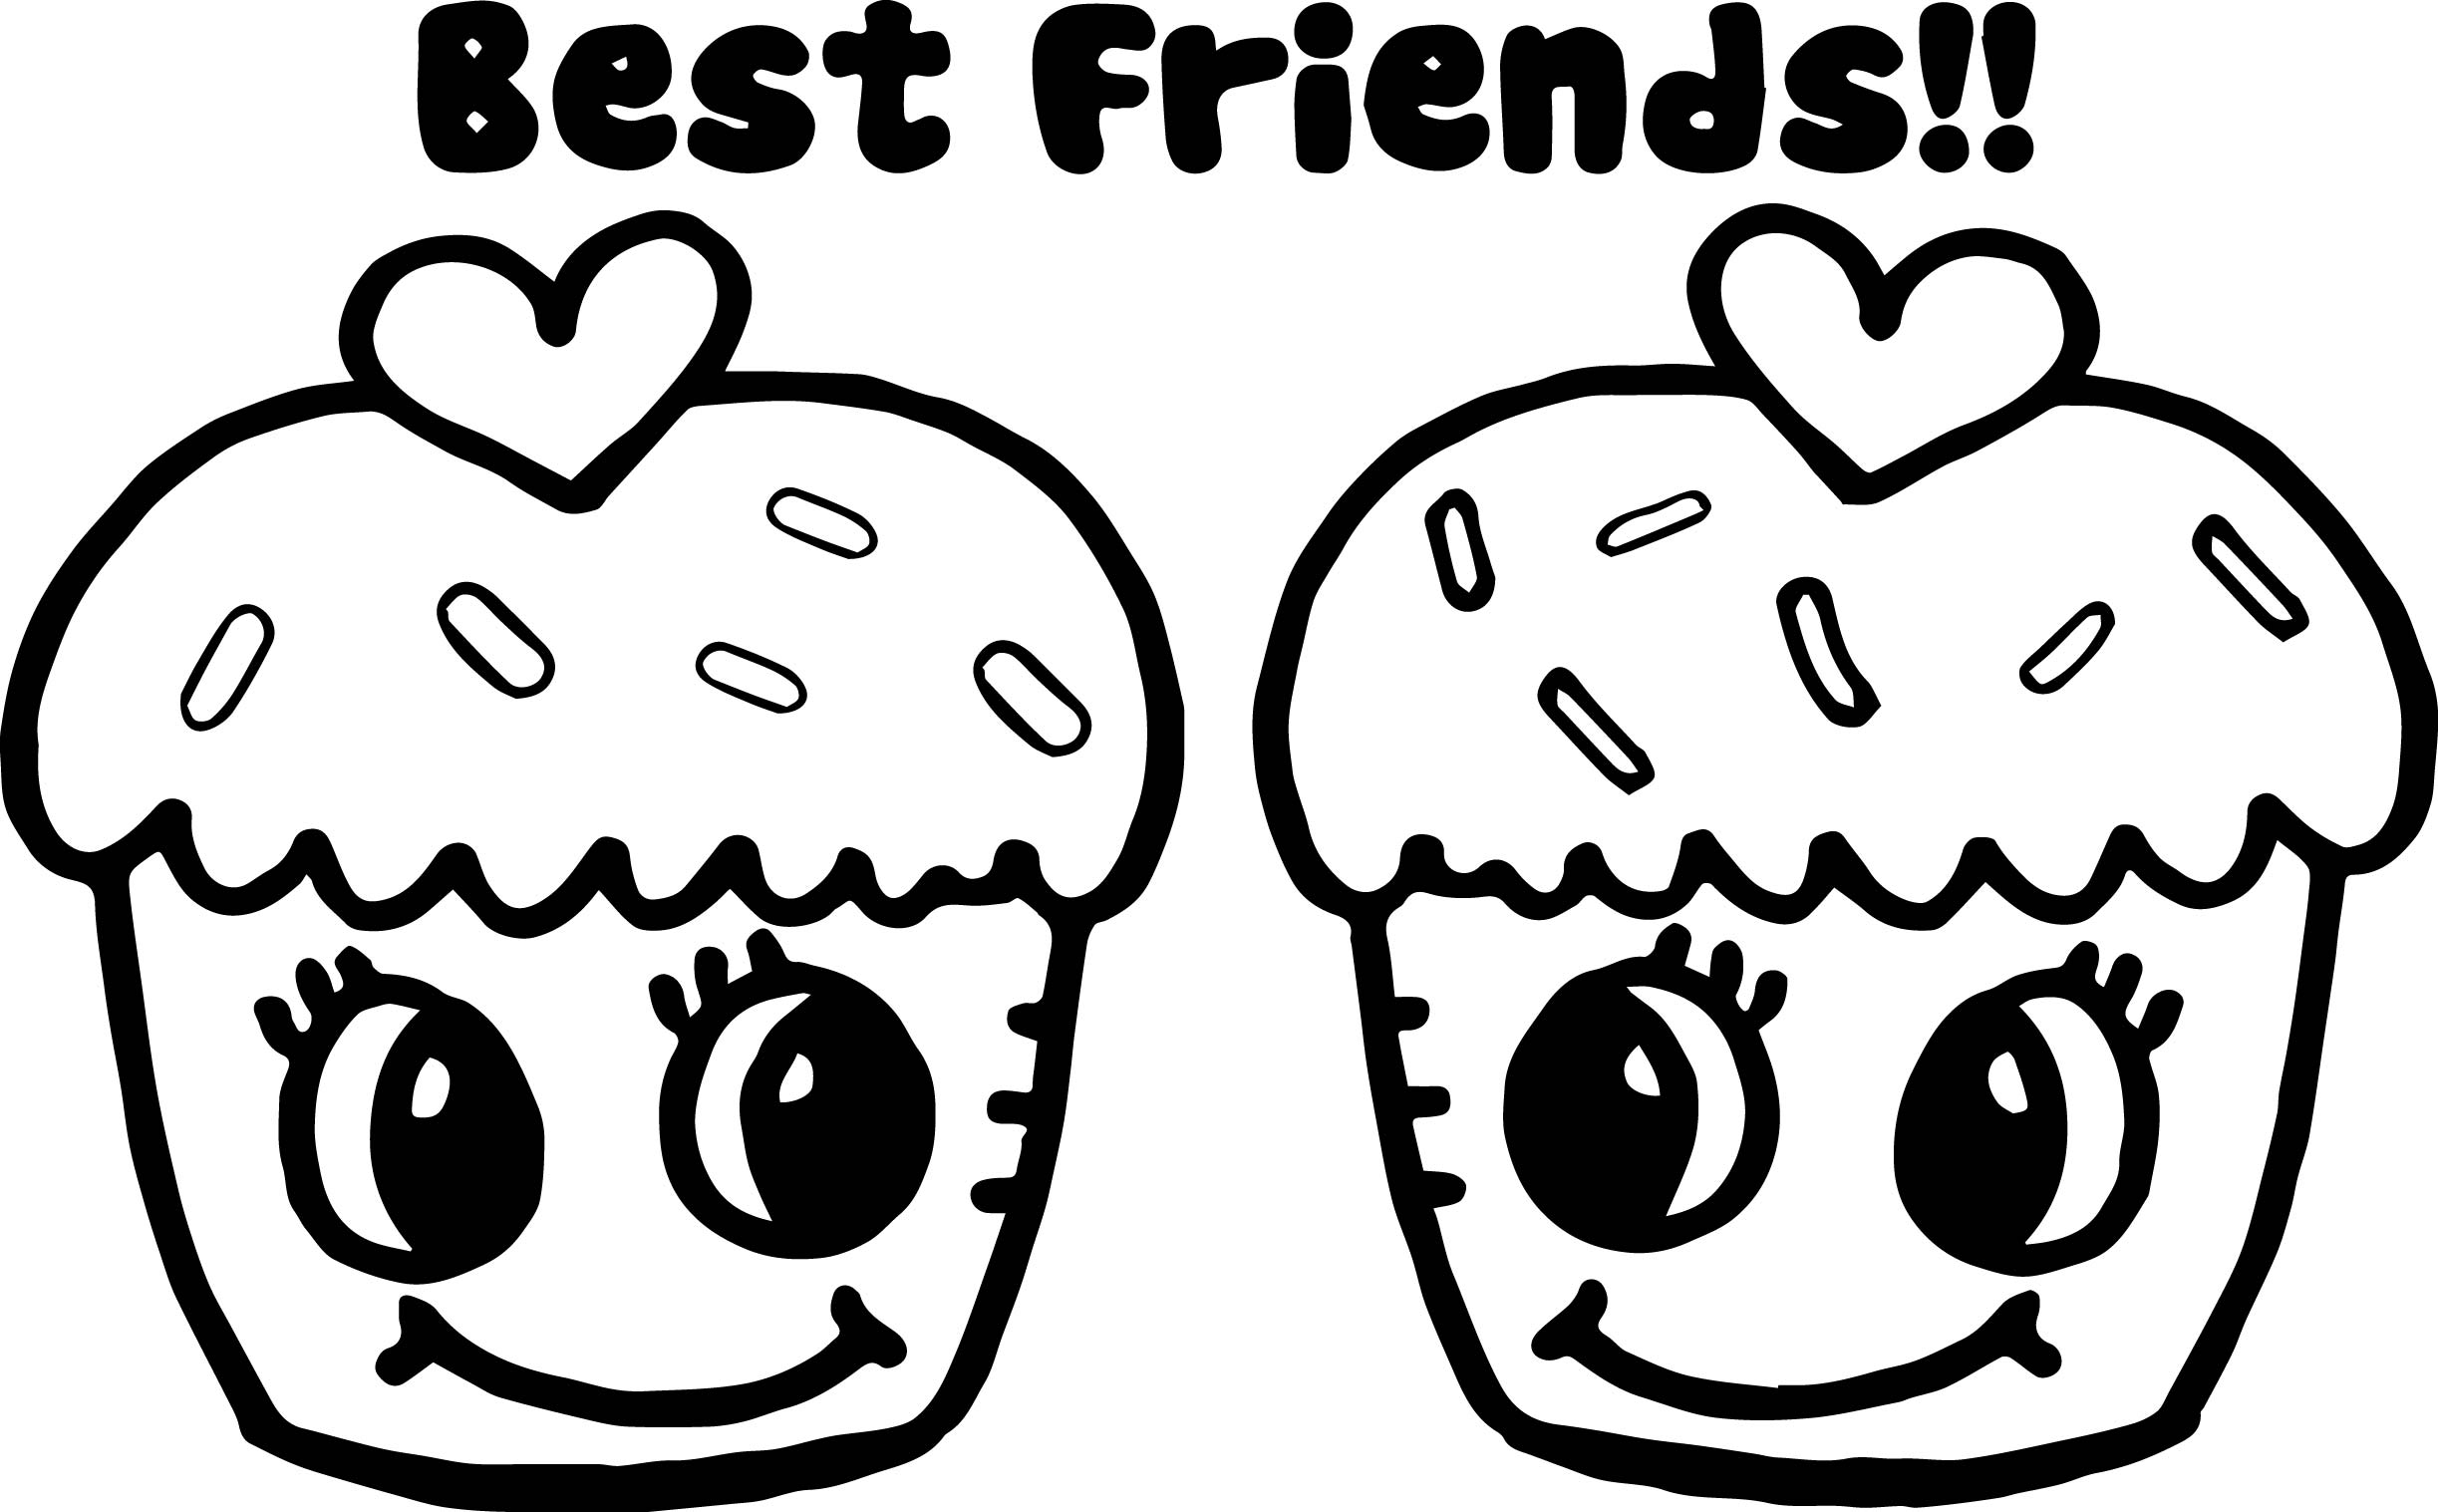 cupcakes best friends coloring page - Cupcakes Coloring Pages